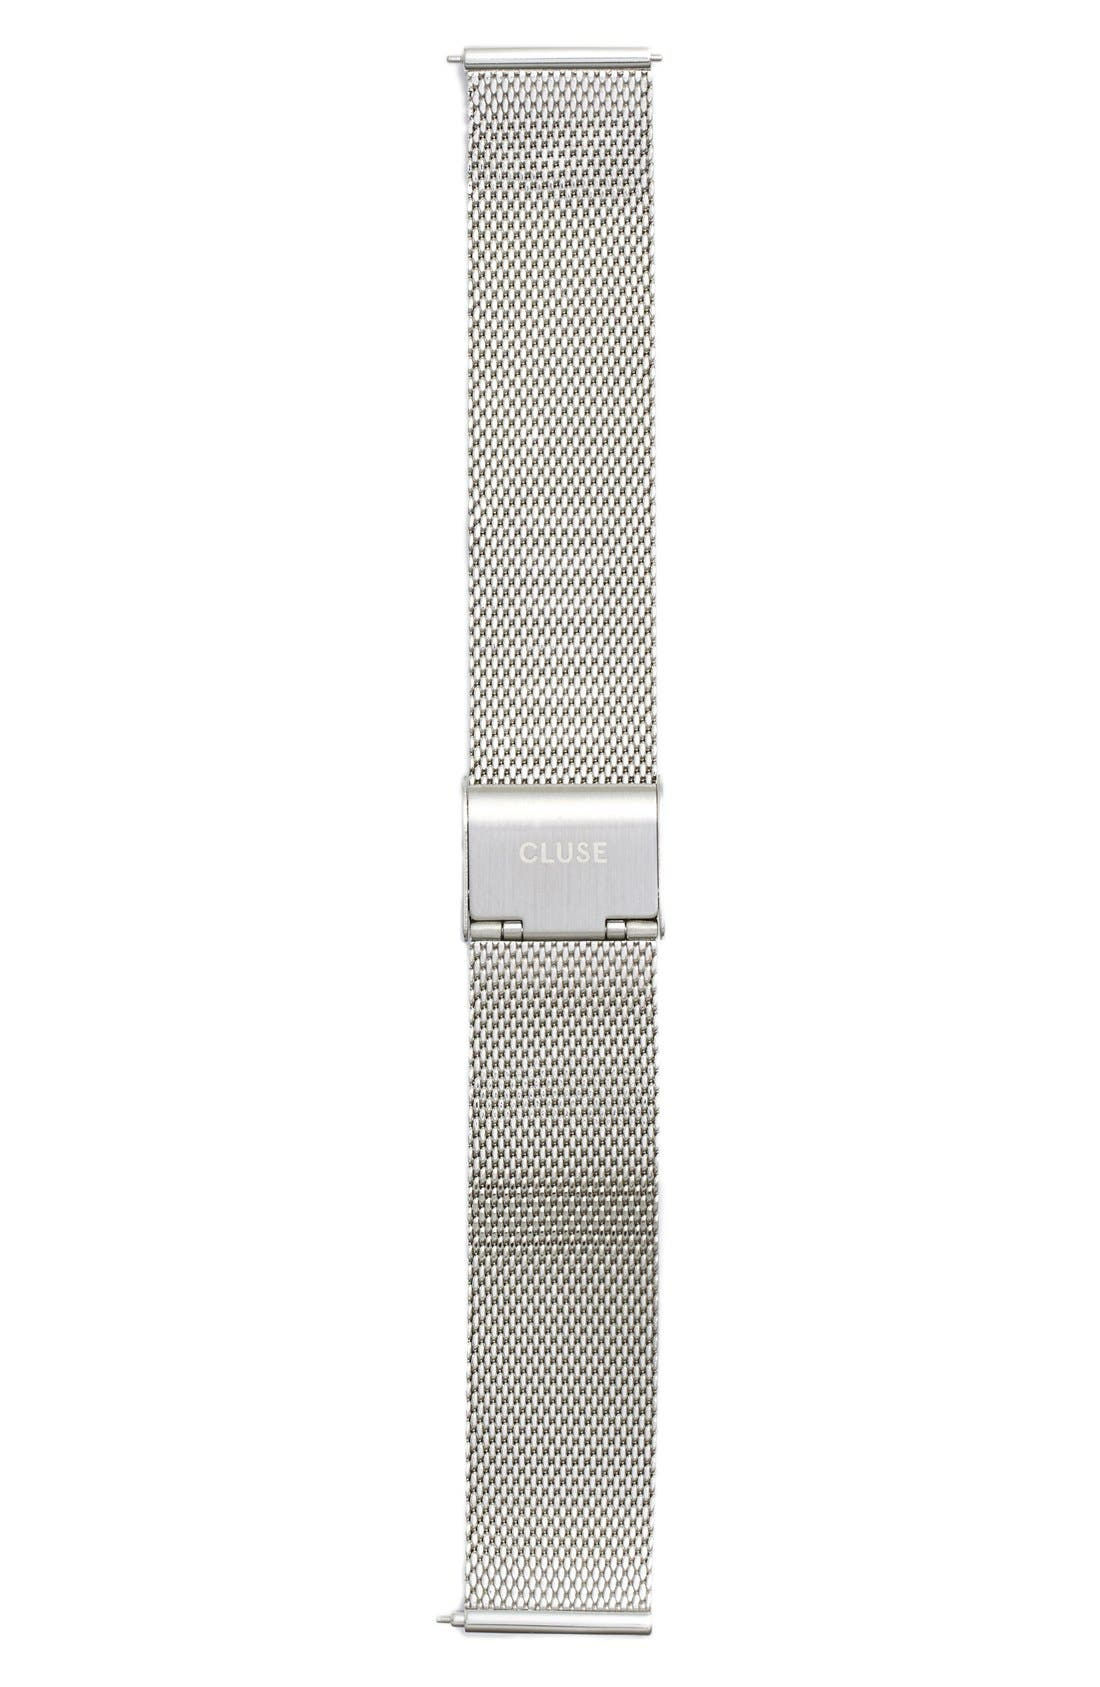 CLUSE 'La Bohème' 18mm Mesh Watch Strap